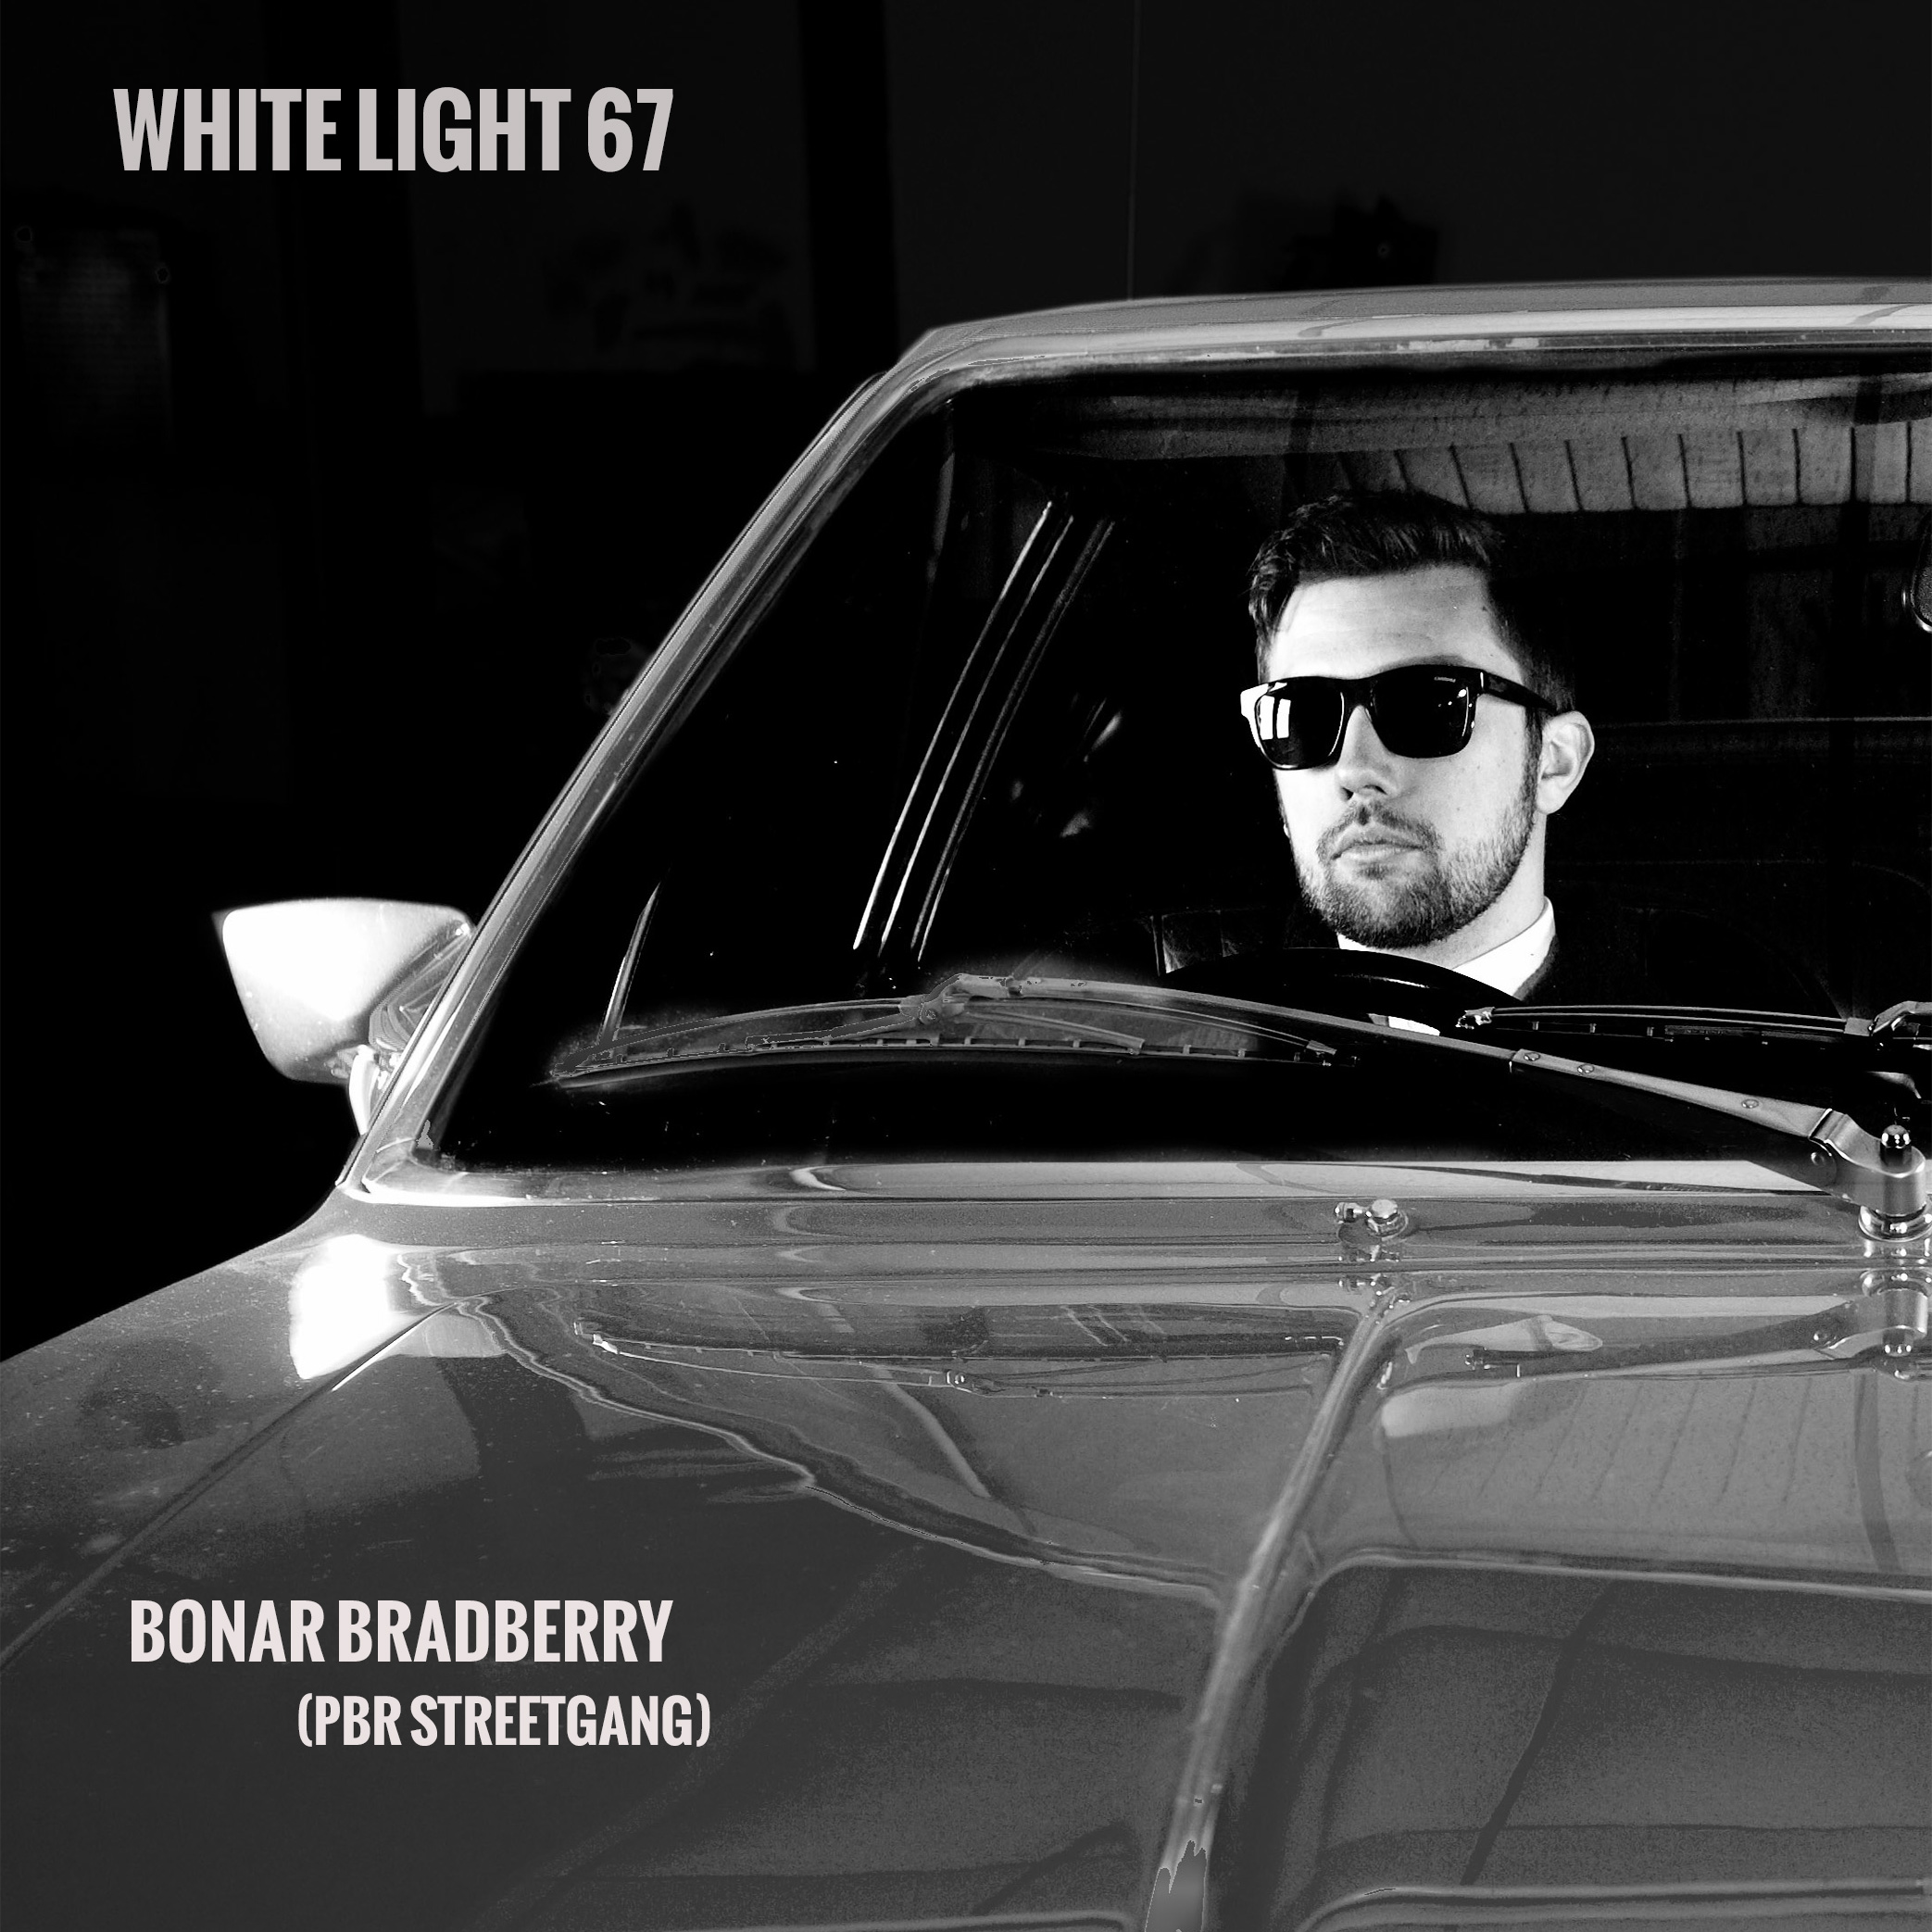 White Light 67 - Bonar Bradberry (PBR Streetgang)